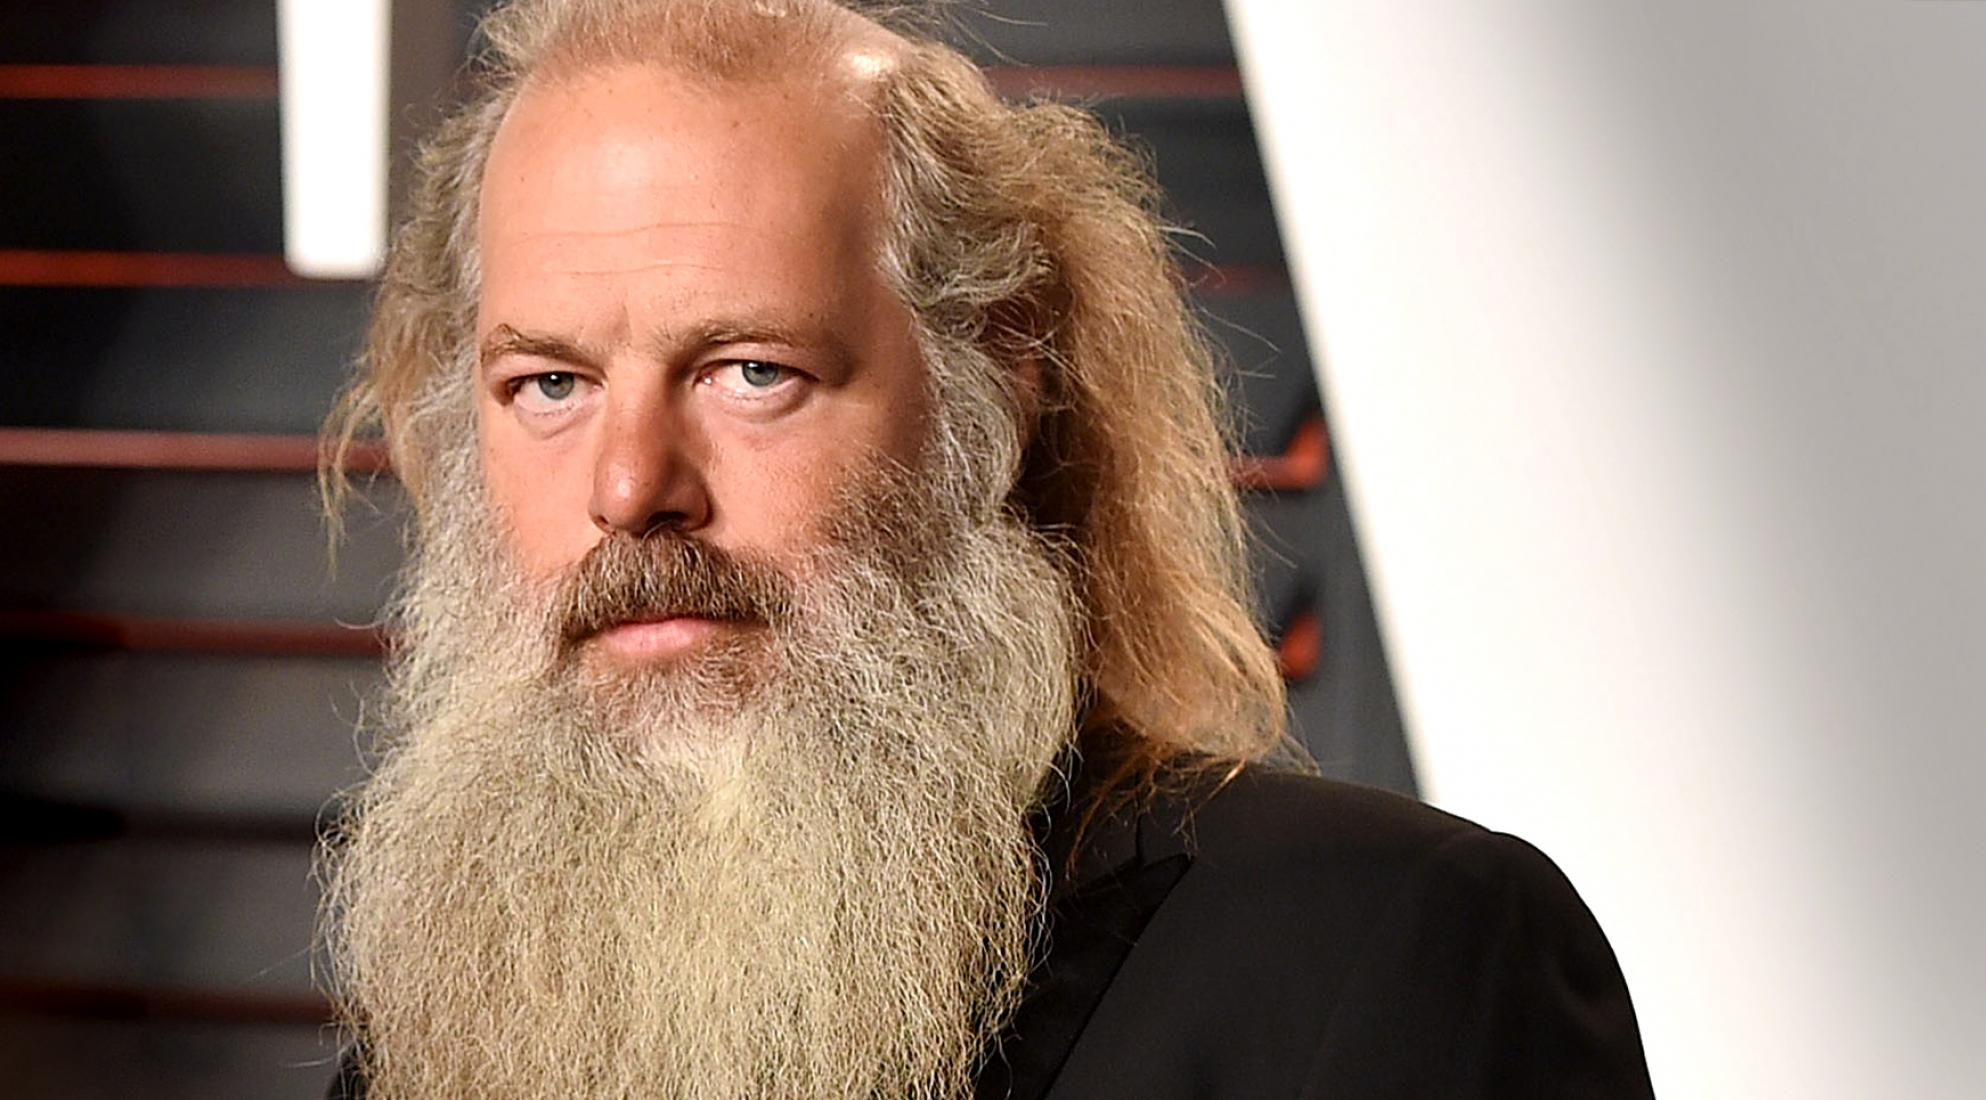 audio production advice - Rick Rubin